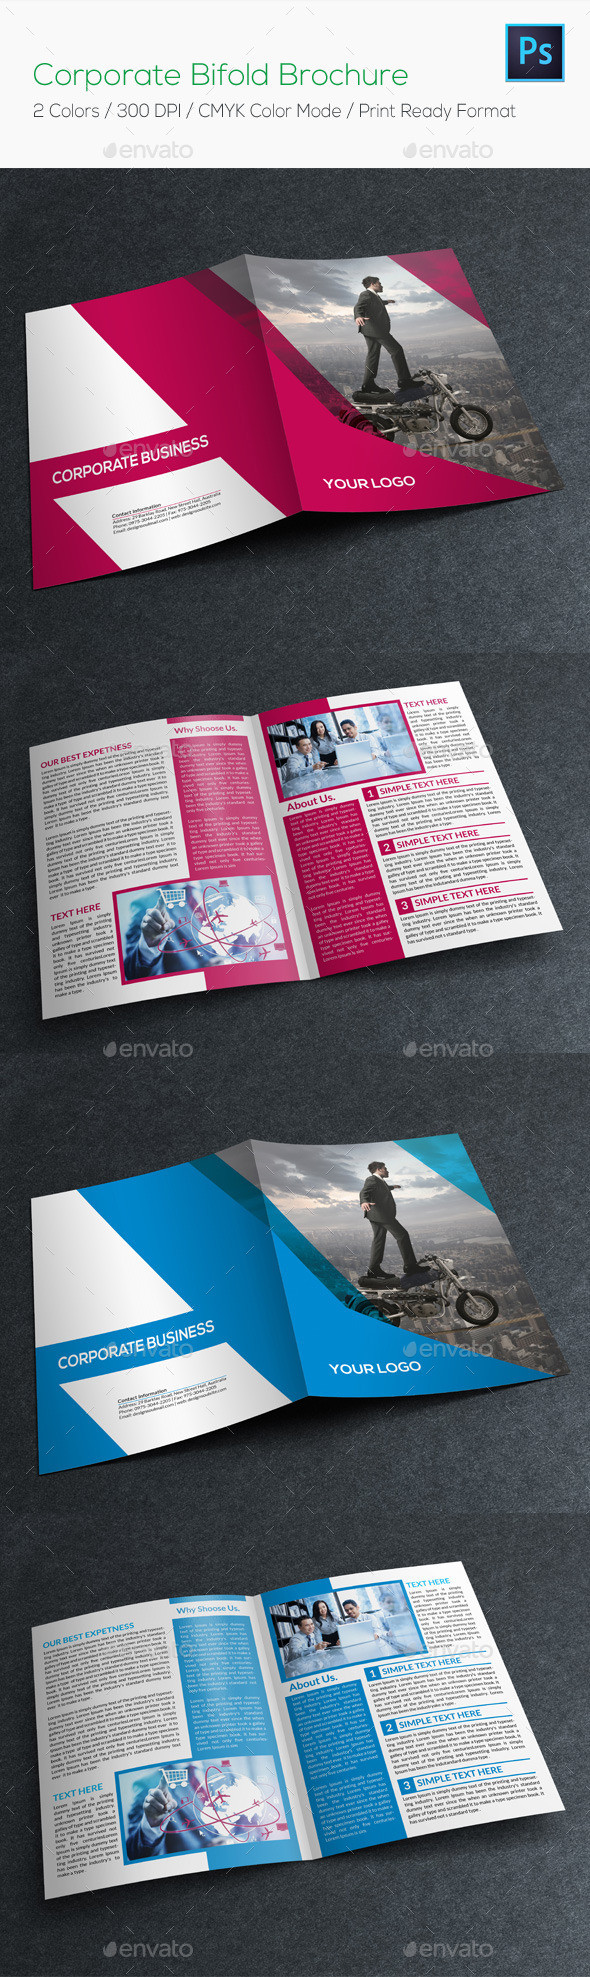 Corporate bifold brochure preview